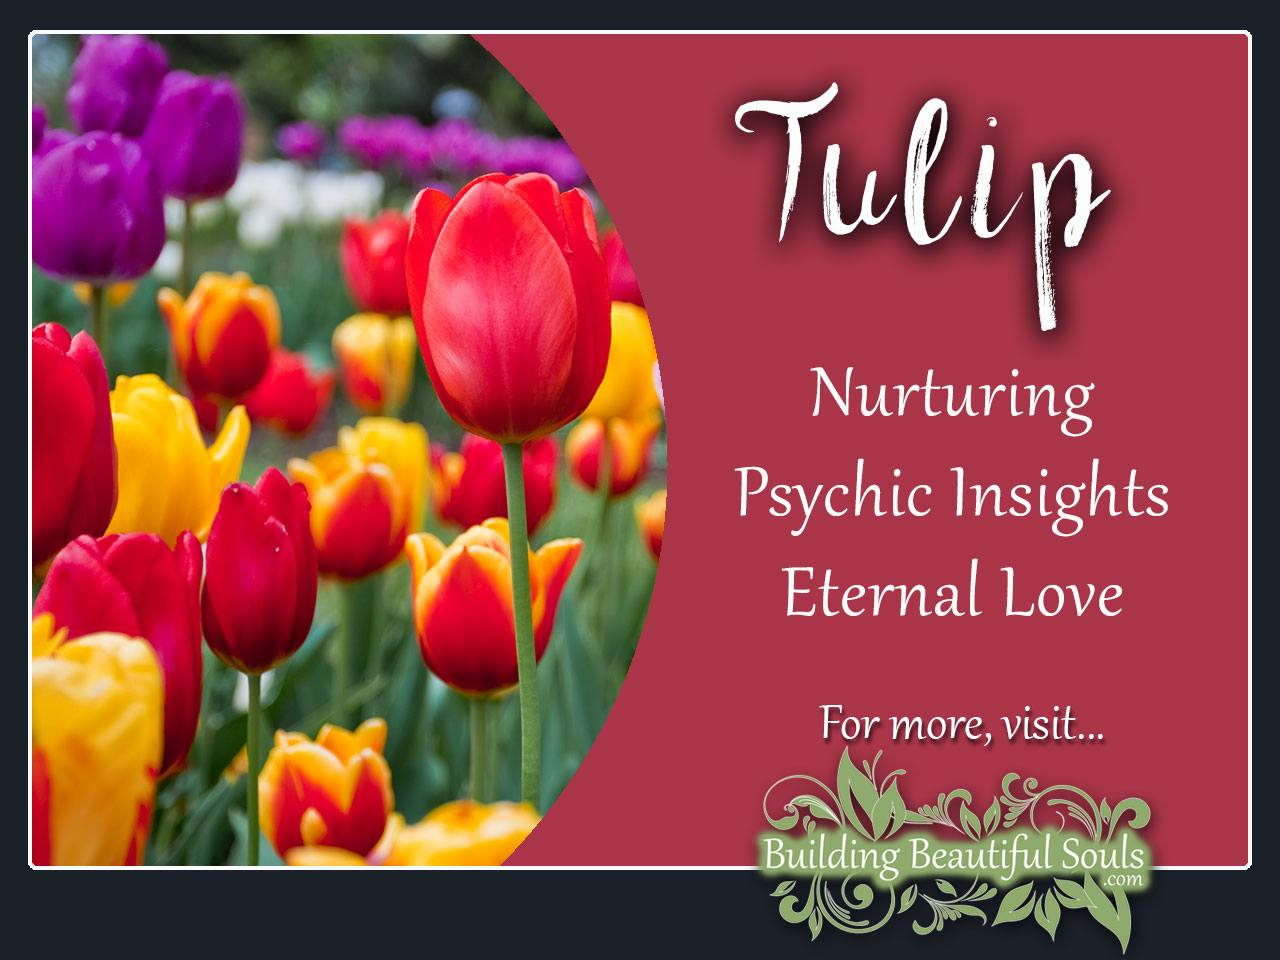 Tulip meaning symbolism flower meanings symbolism tulip meaning symbolism flower meanings 1280x960 biocorpaavc Image collections